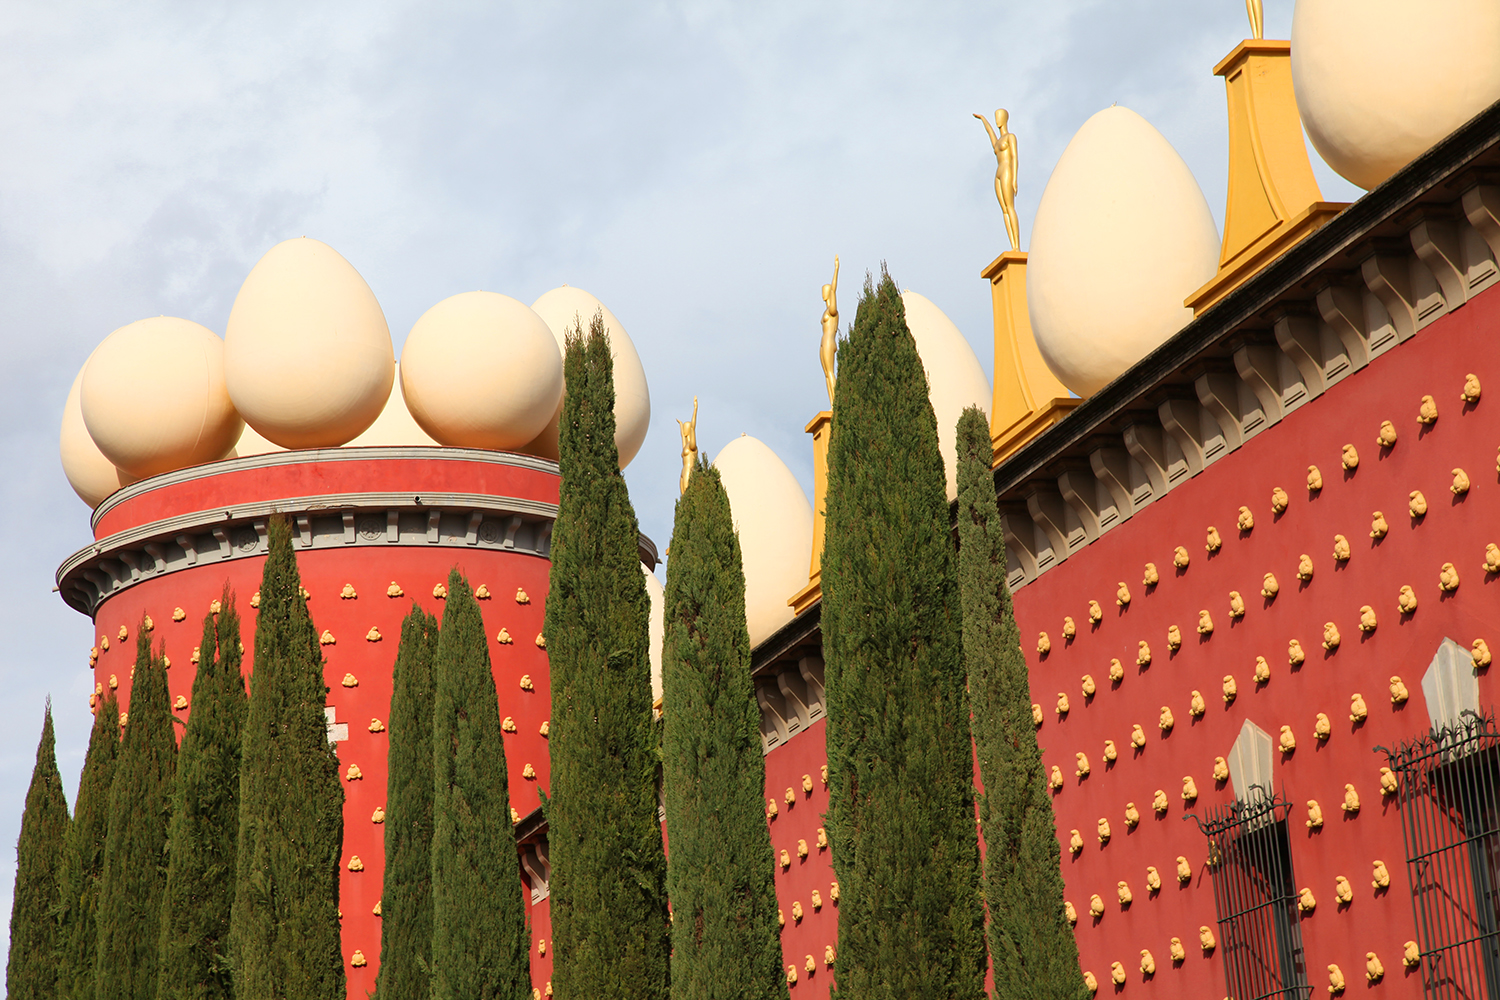 Dalí Museum, The Eggs, Figueres, Spain 2017